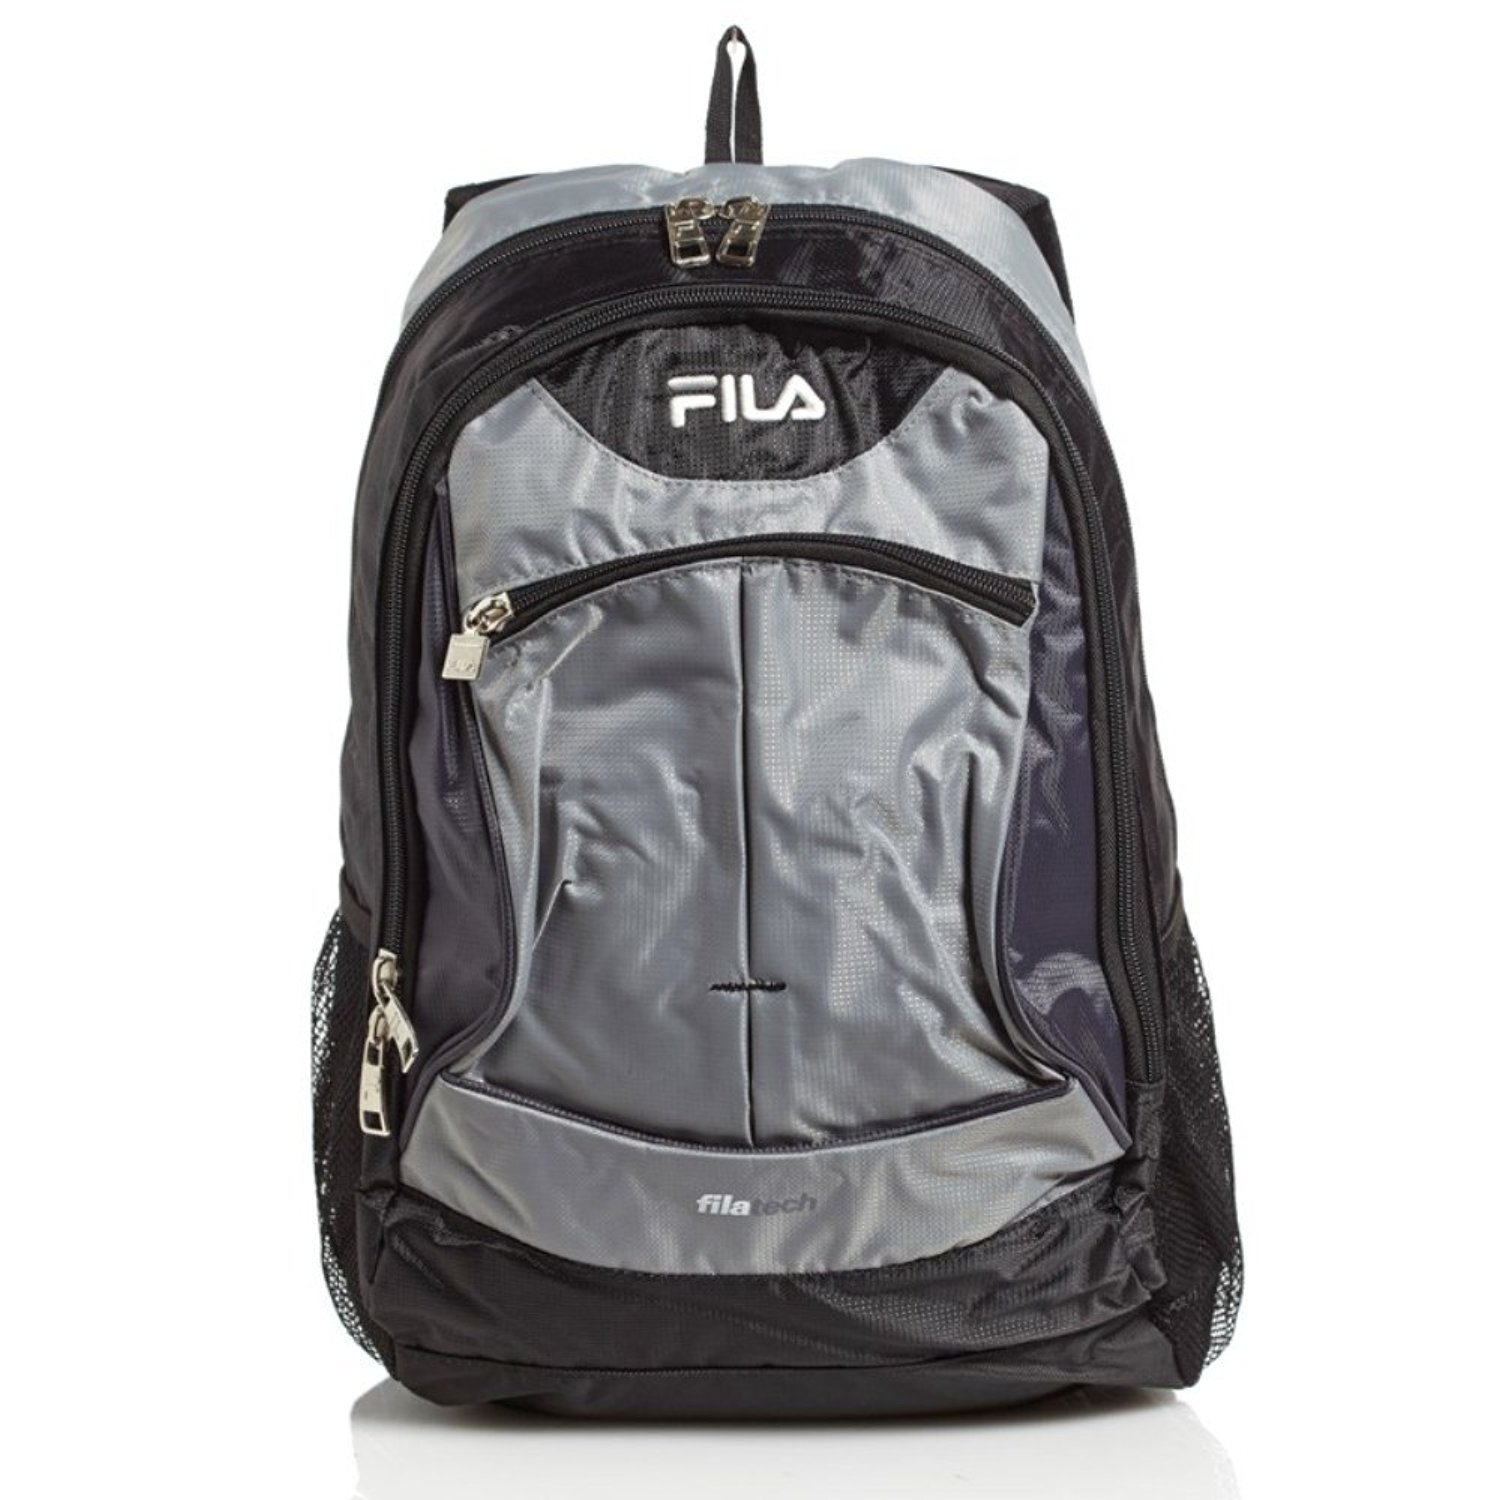 3a17f25ae1 Get Quotations · Fila Tempo School Computer Tablet Bag